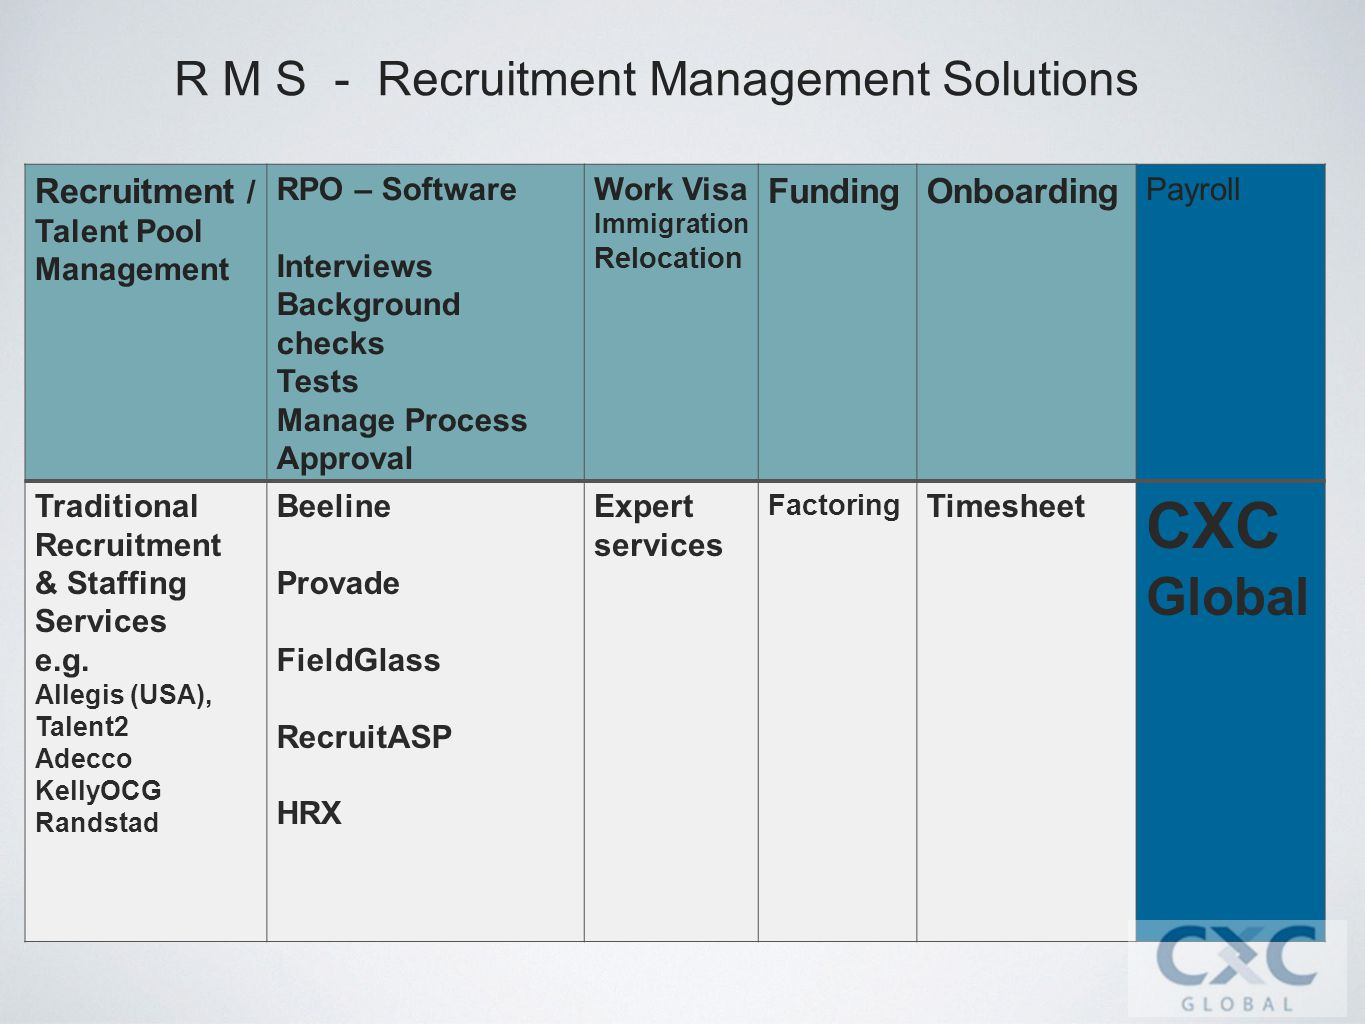 R M S - Recruitment Management Solutions Recruitment / Talent Pool Management RPO – Software Interviews Background checks Tests Manage Process Approval Work Visa Immigration Relocation FundingOnboarding Payroll Traditional Recruitment & Staffing Services e.g.